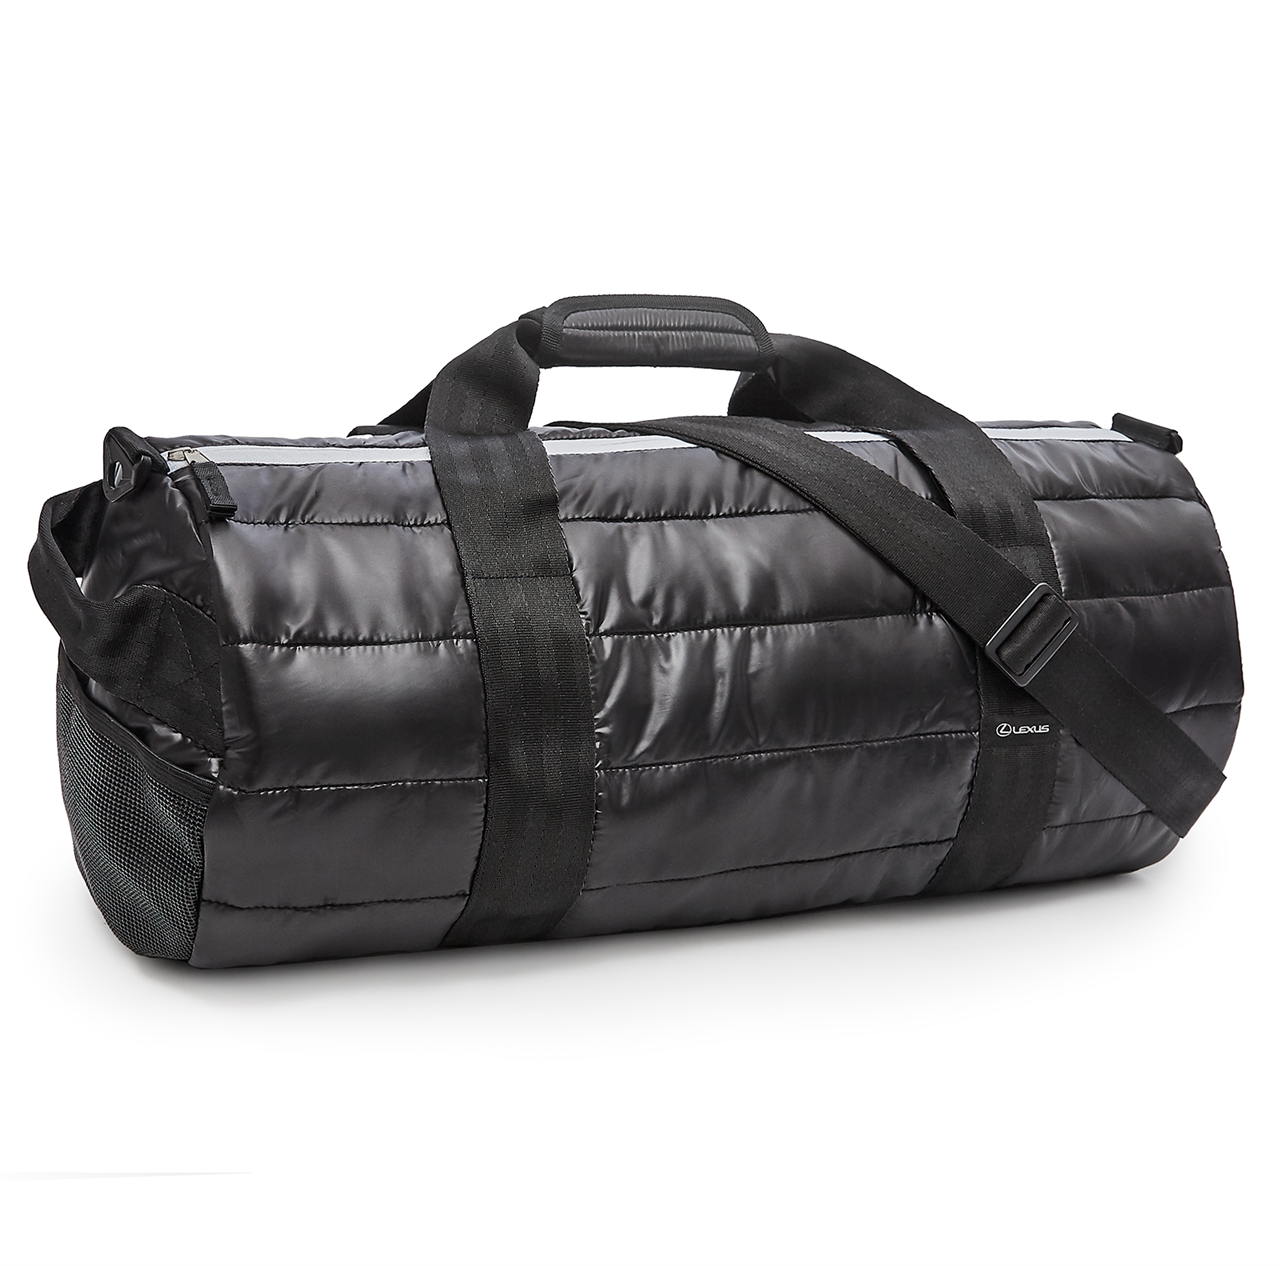 Puffer Travel Bag